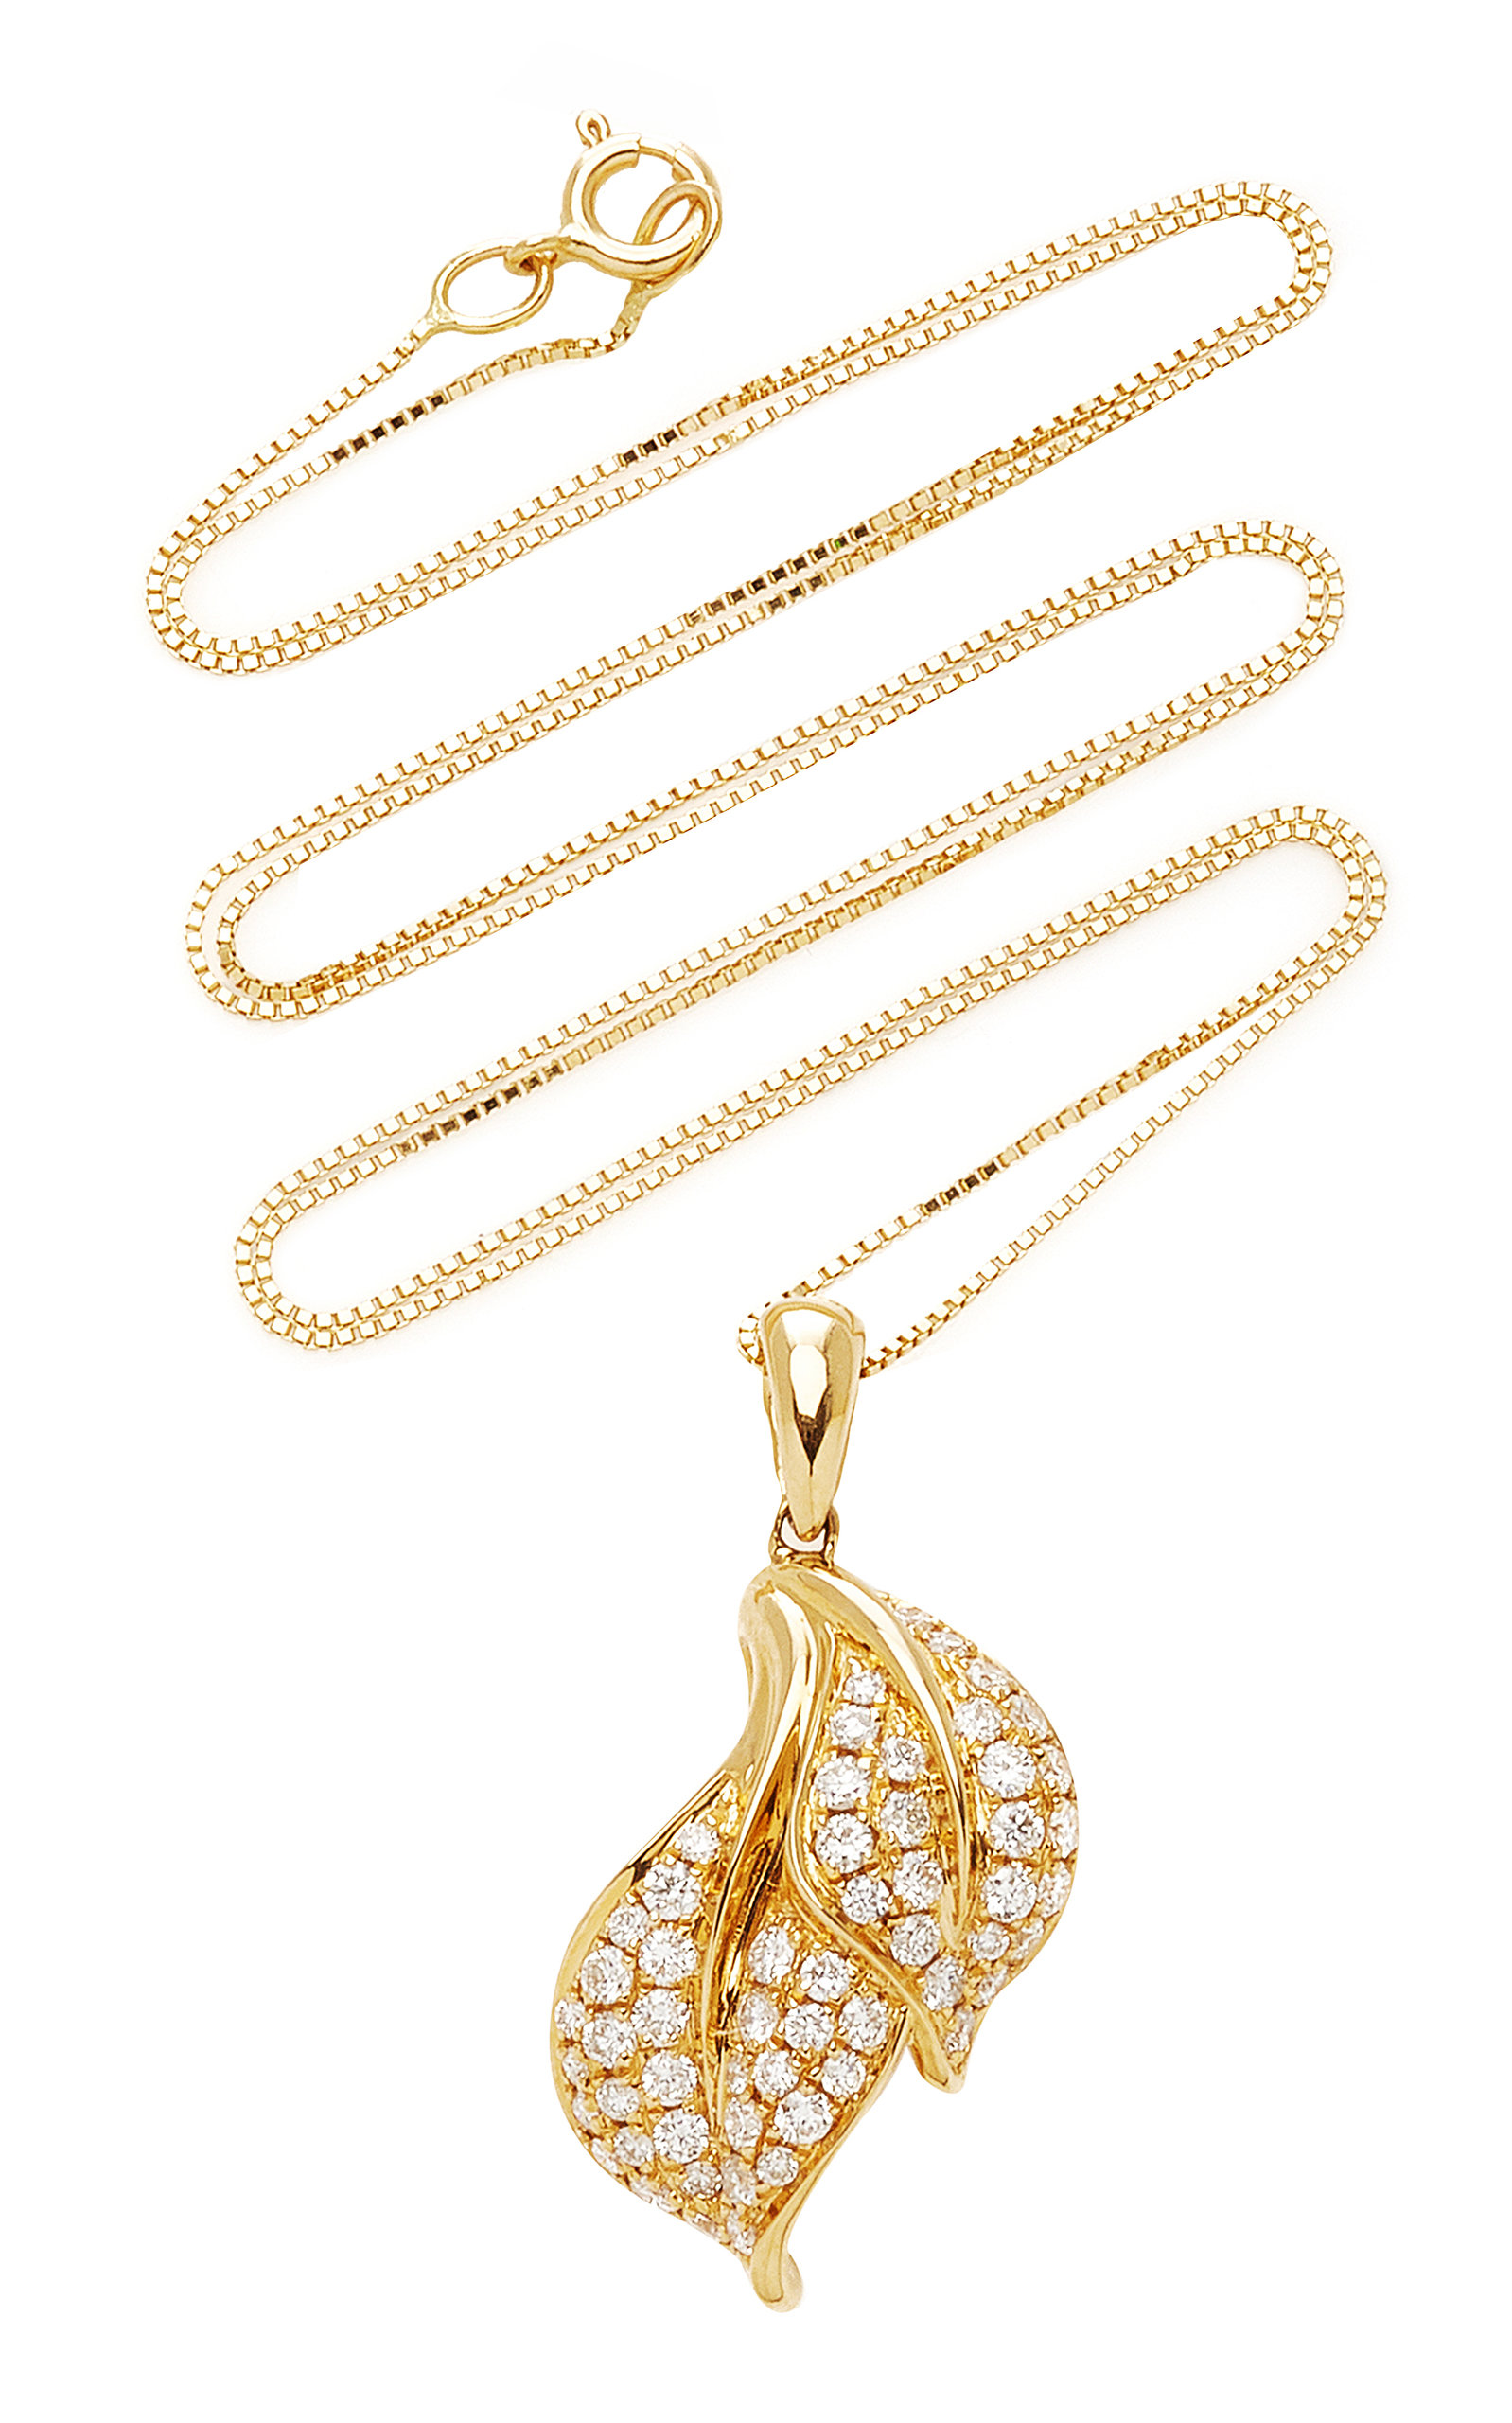 Women's Spring Yellow-Gold and White Diamond Necklace